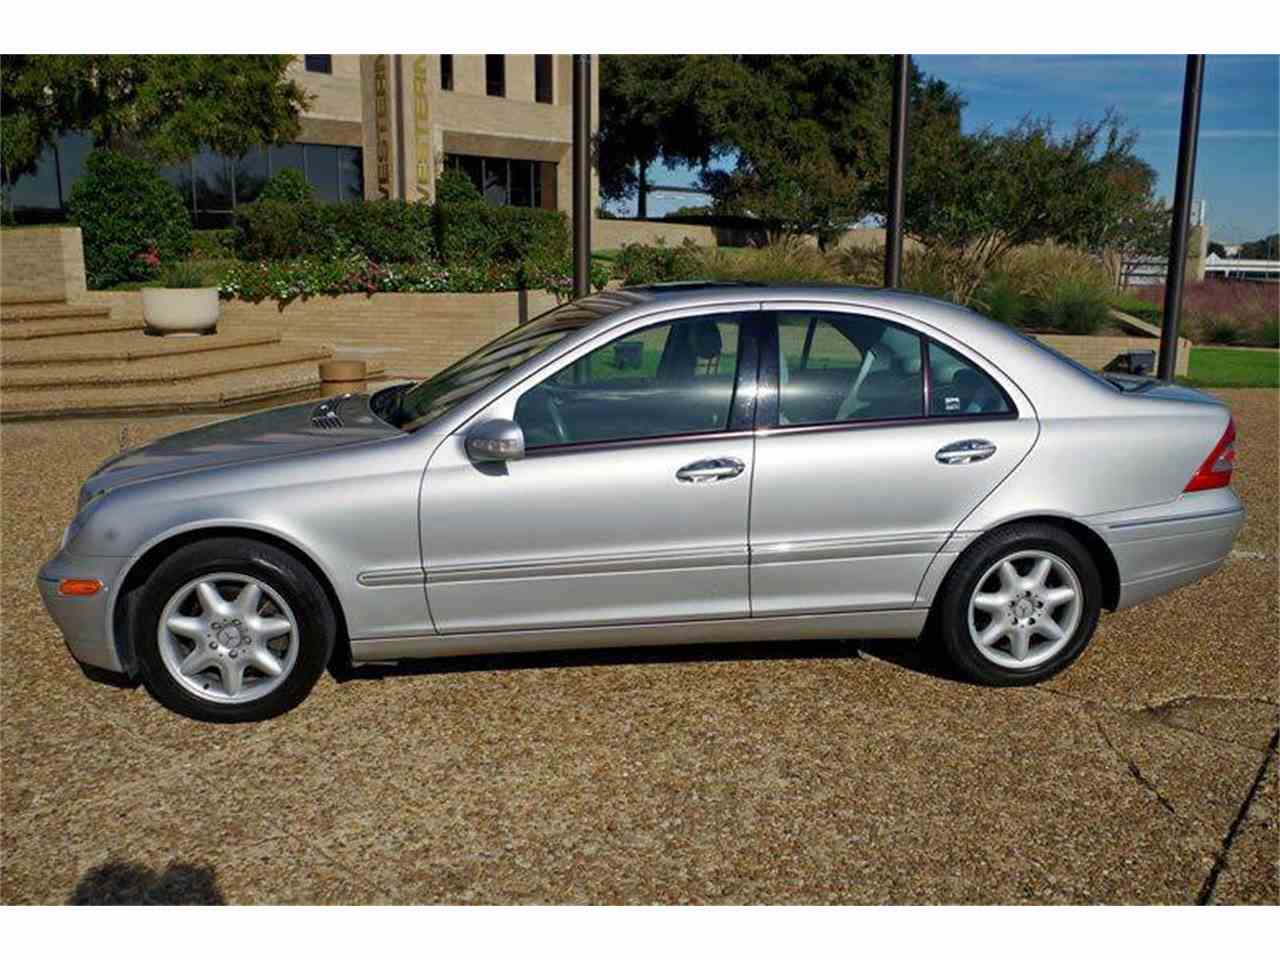 Large Picture of 2004 Mercedes-Benz C-Class located in Texas - $7,995.00 - I36Y